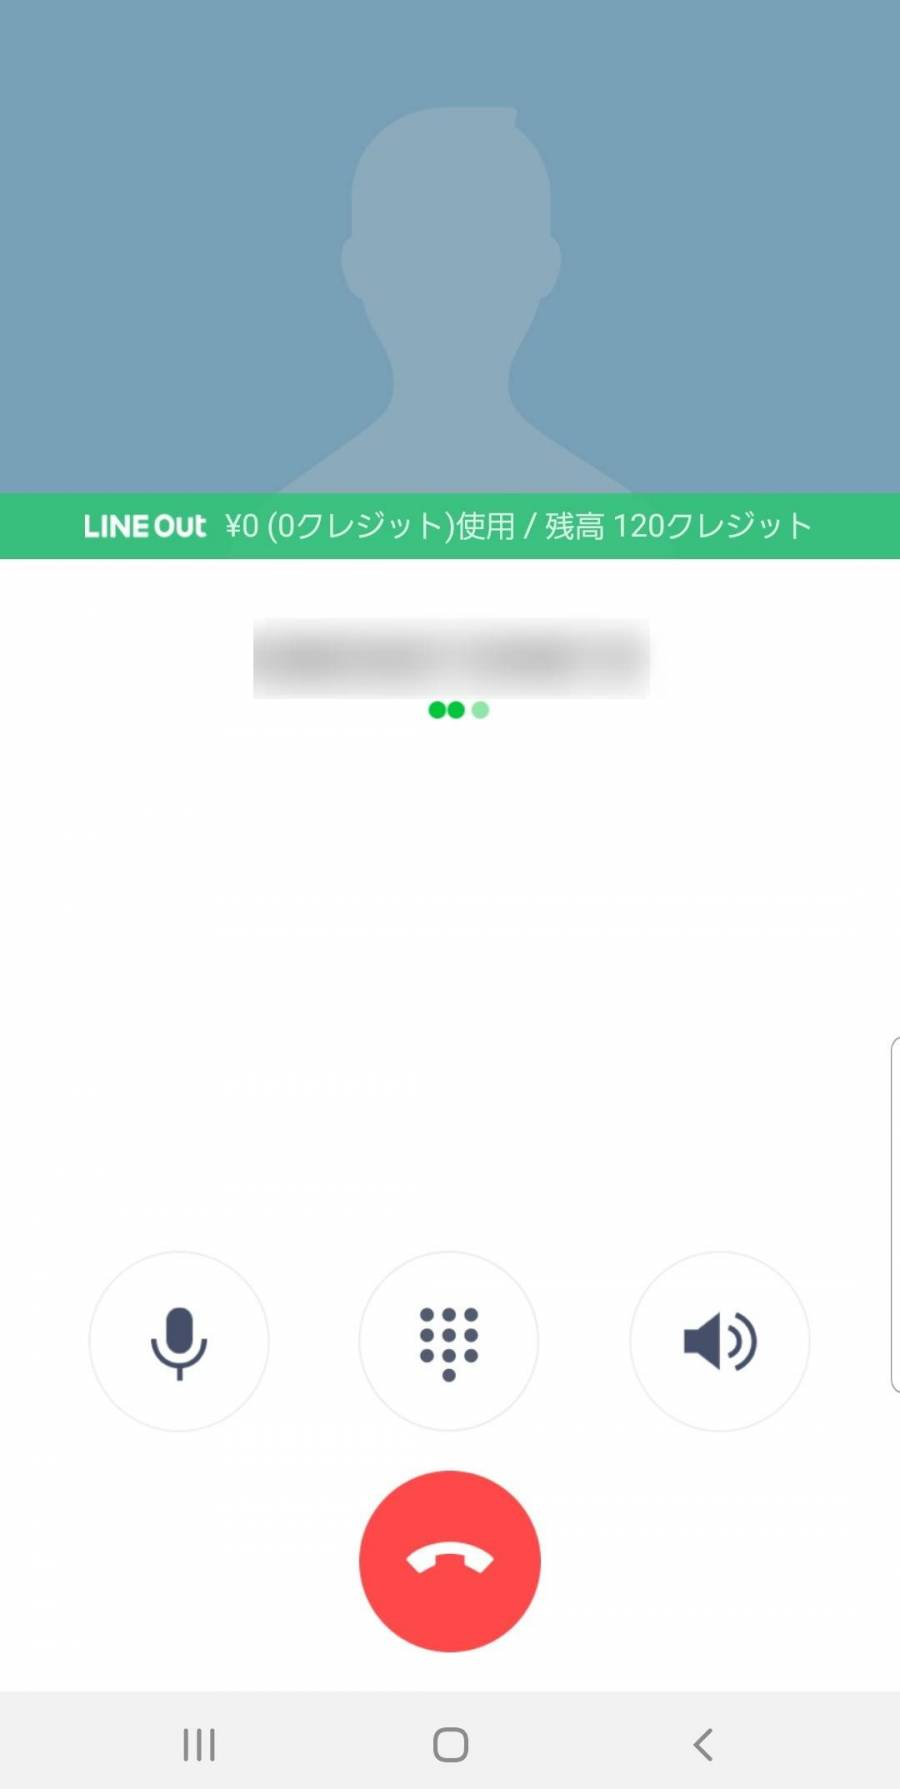 LINE Out発信